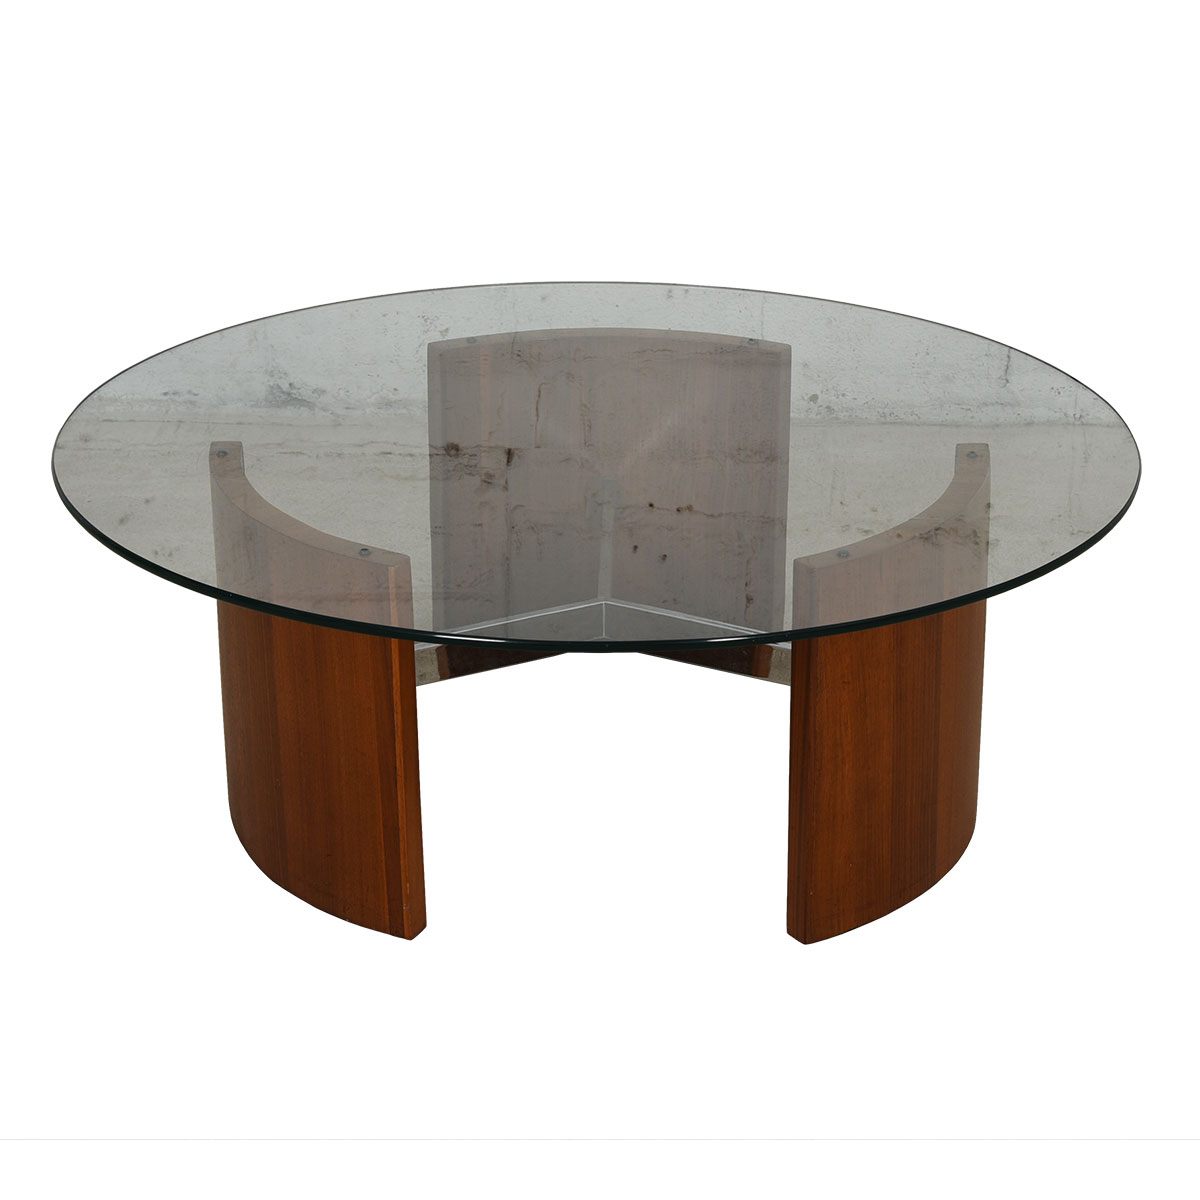 Vladimir Kagan Radius Walnut Glass Top Cocktail / Coffee Table